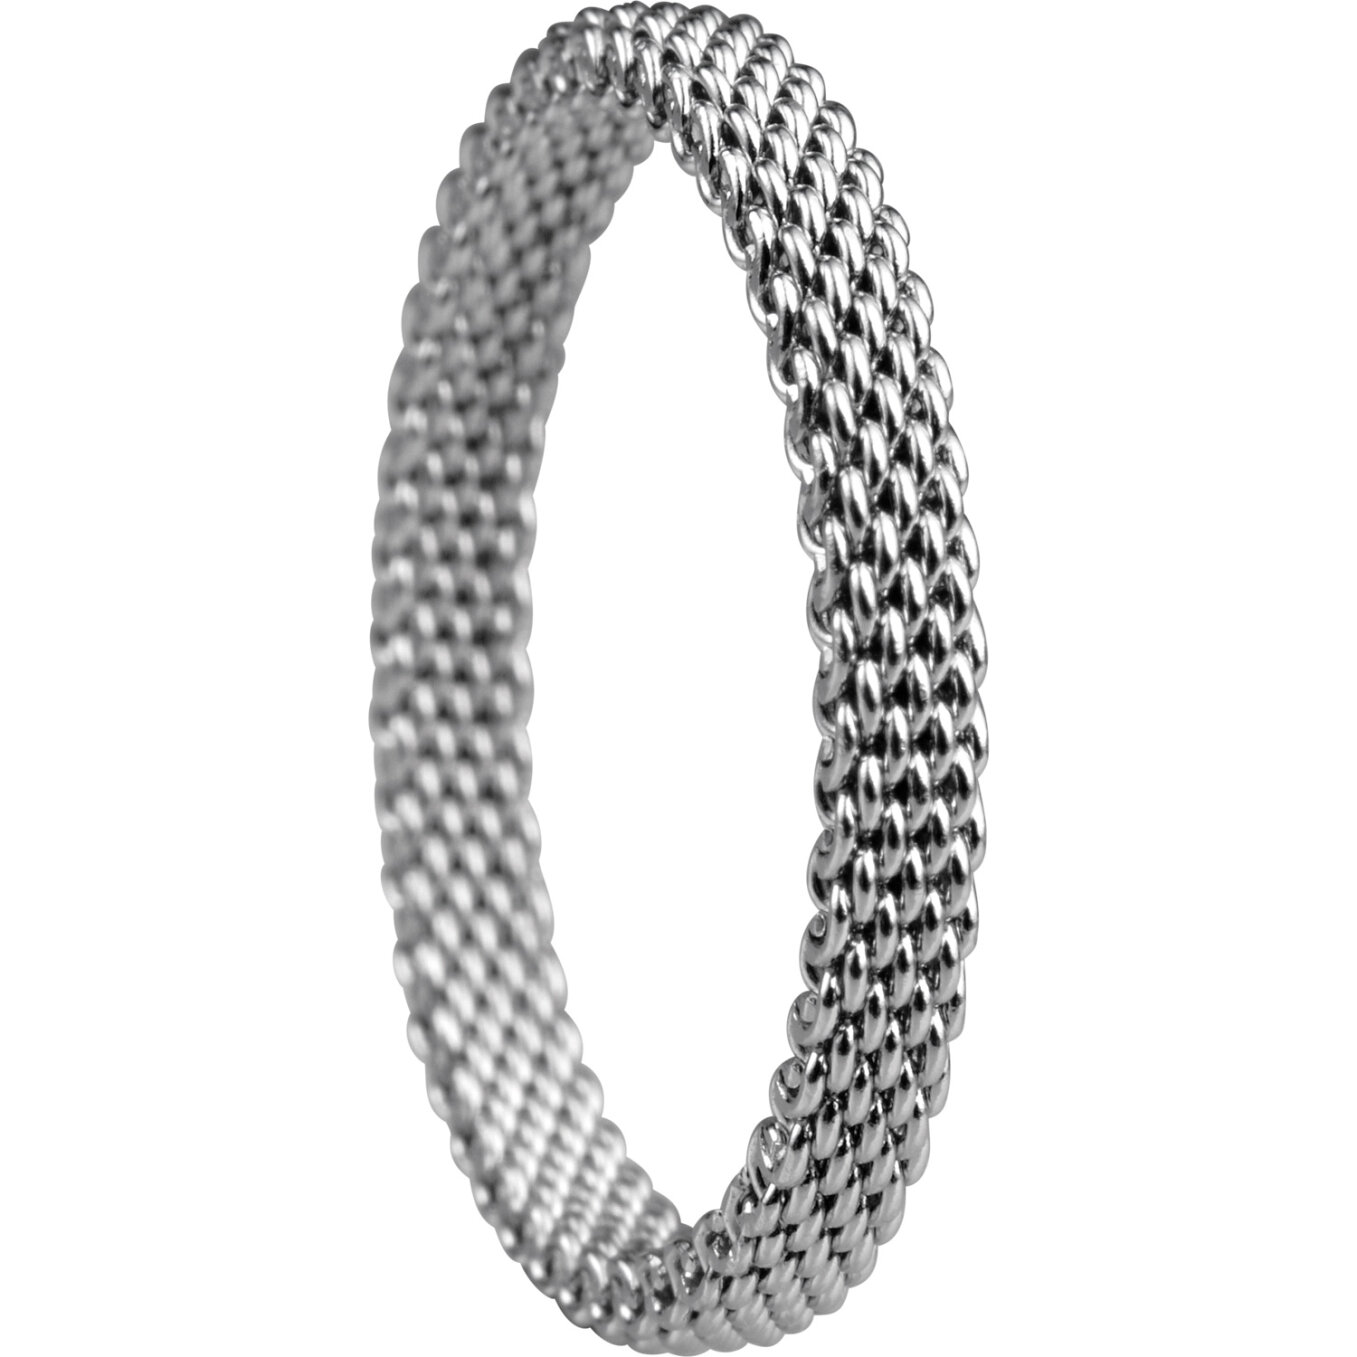 Bering Innenring 551-10-71 Milanaise silber